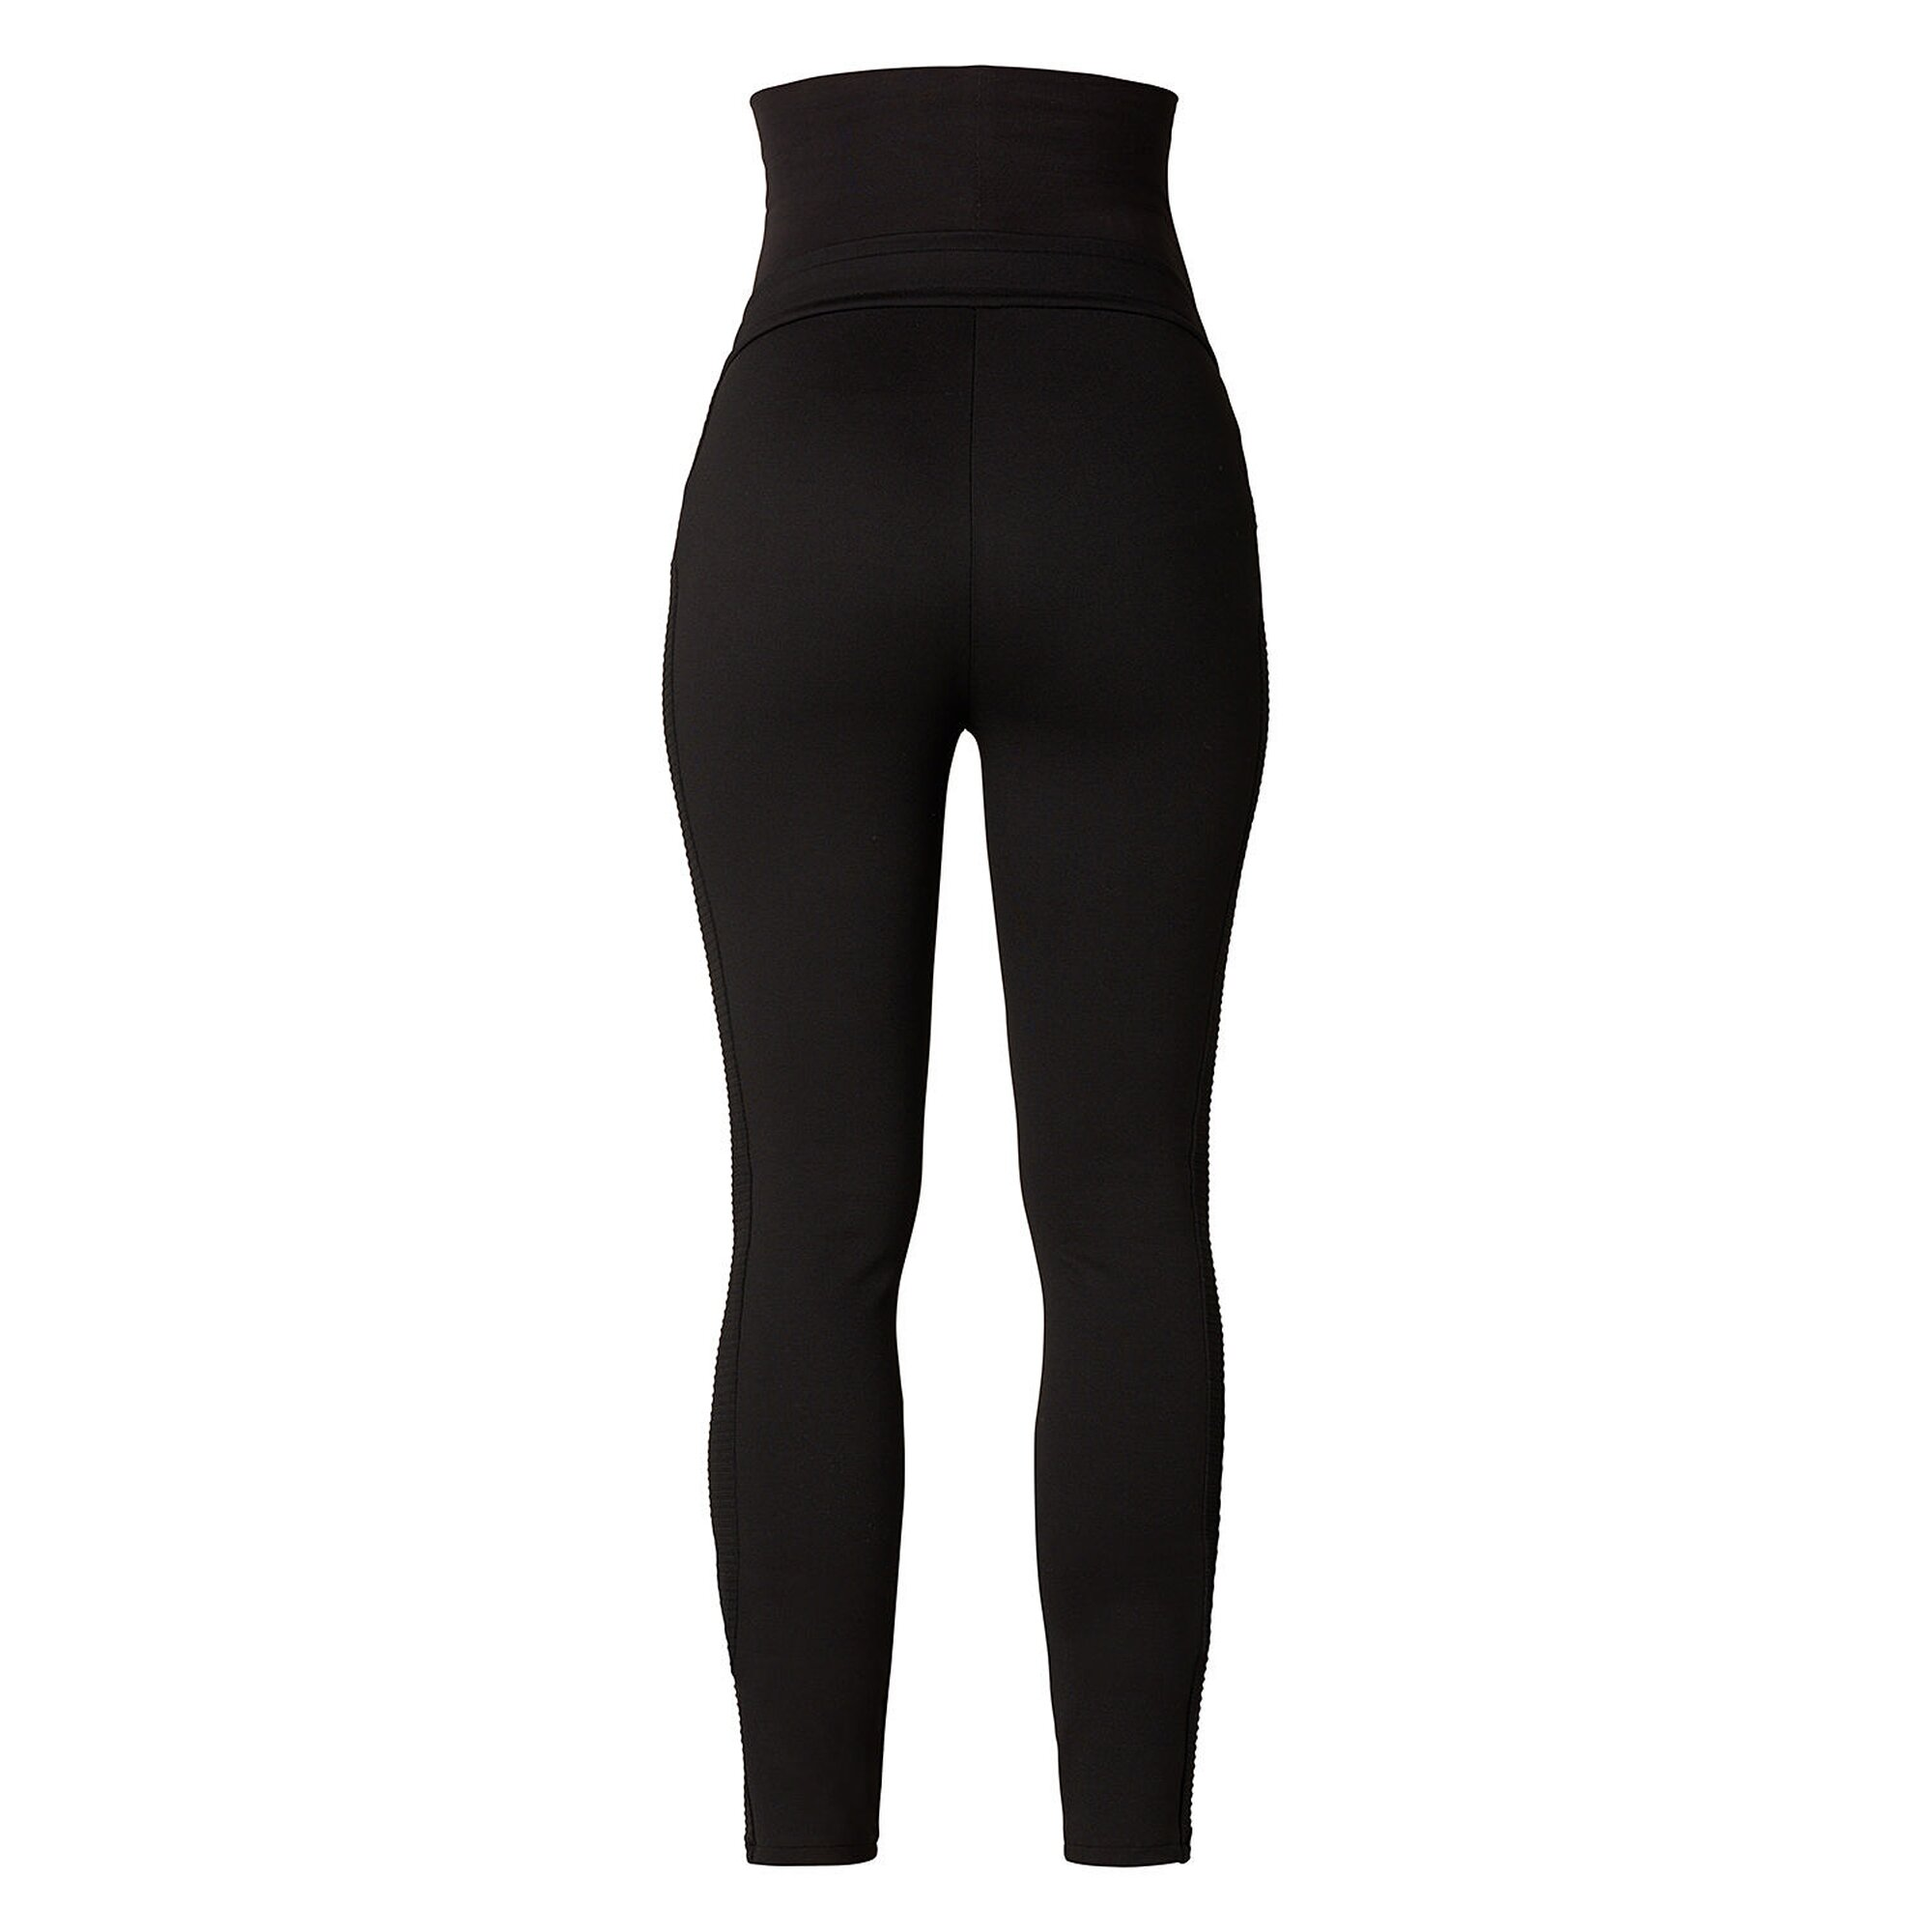 noppies-treggings-babette, 47.99 EUR @ babywalz-de